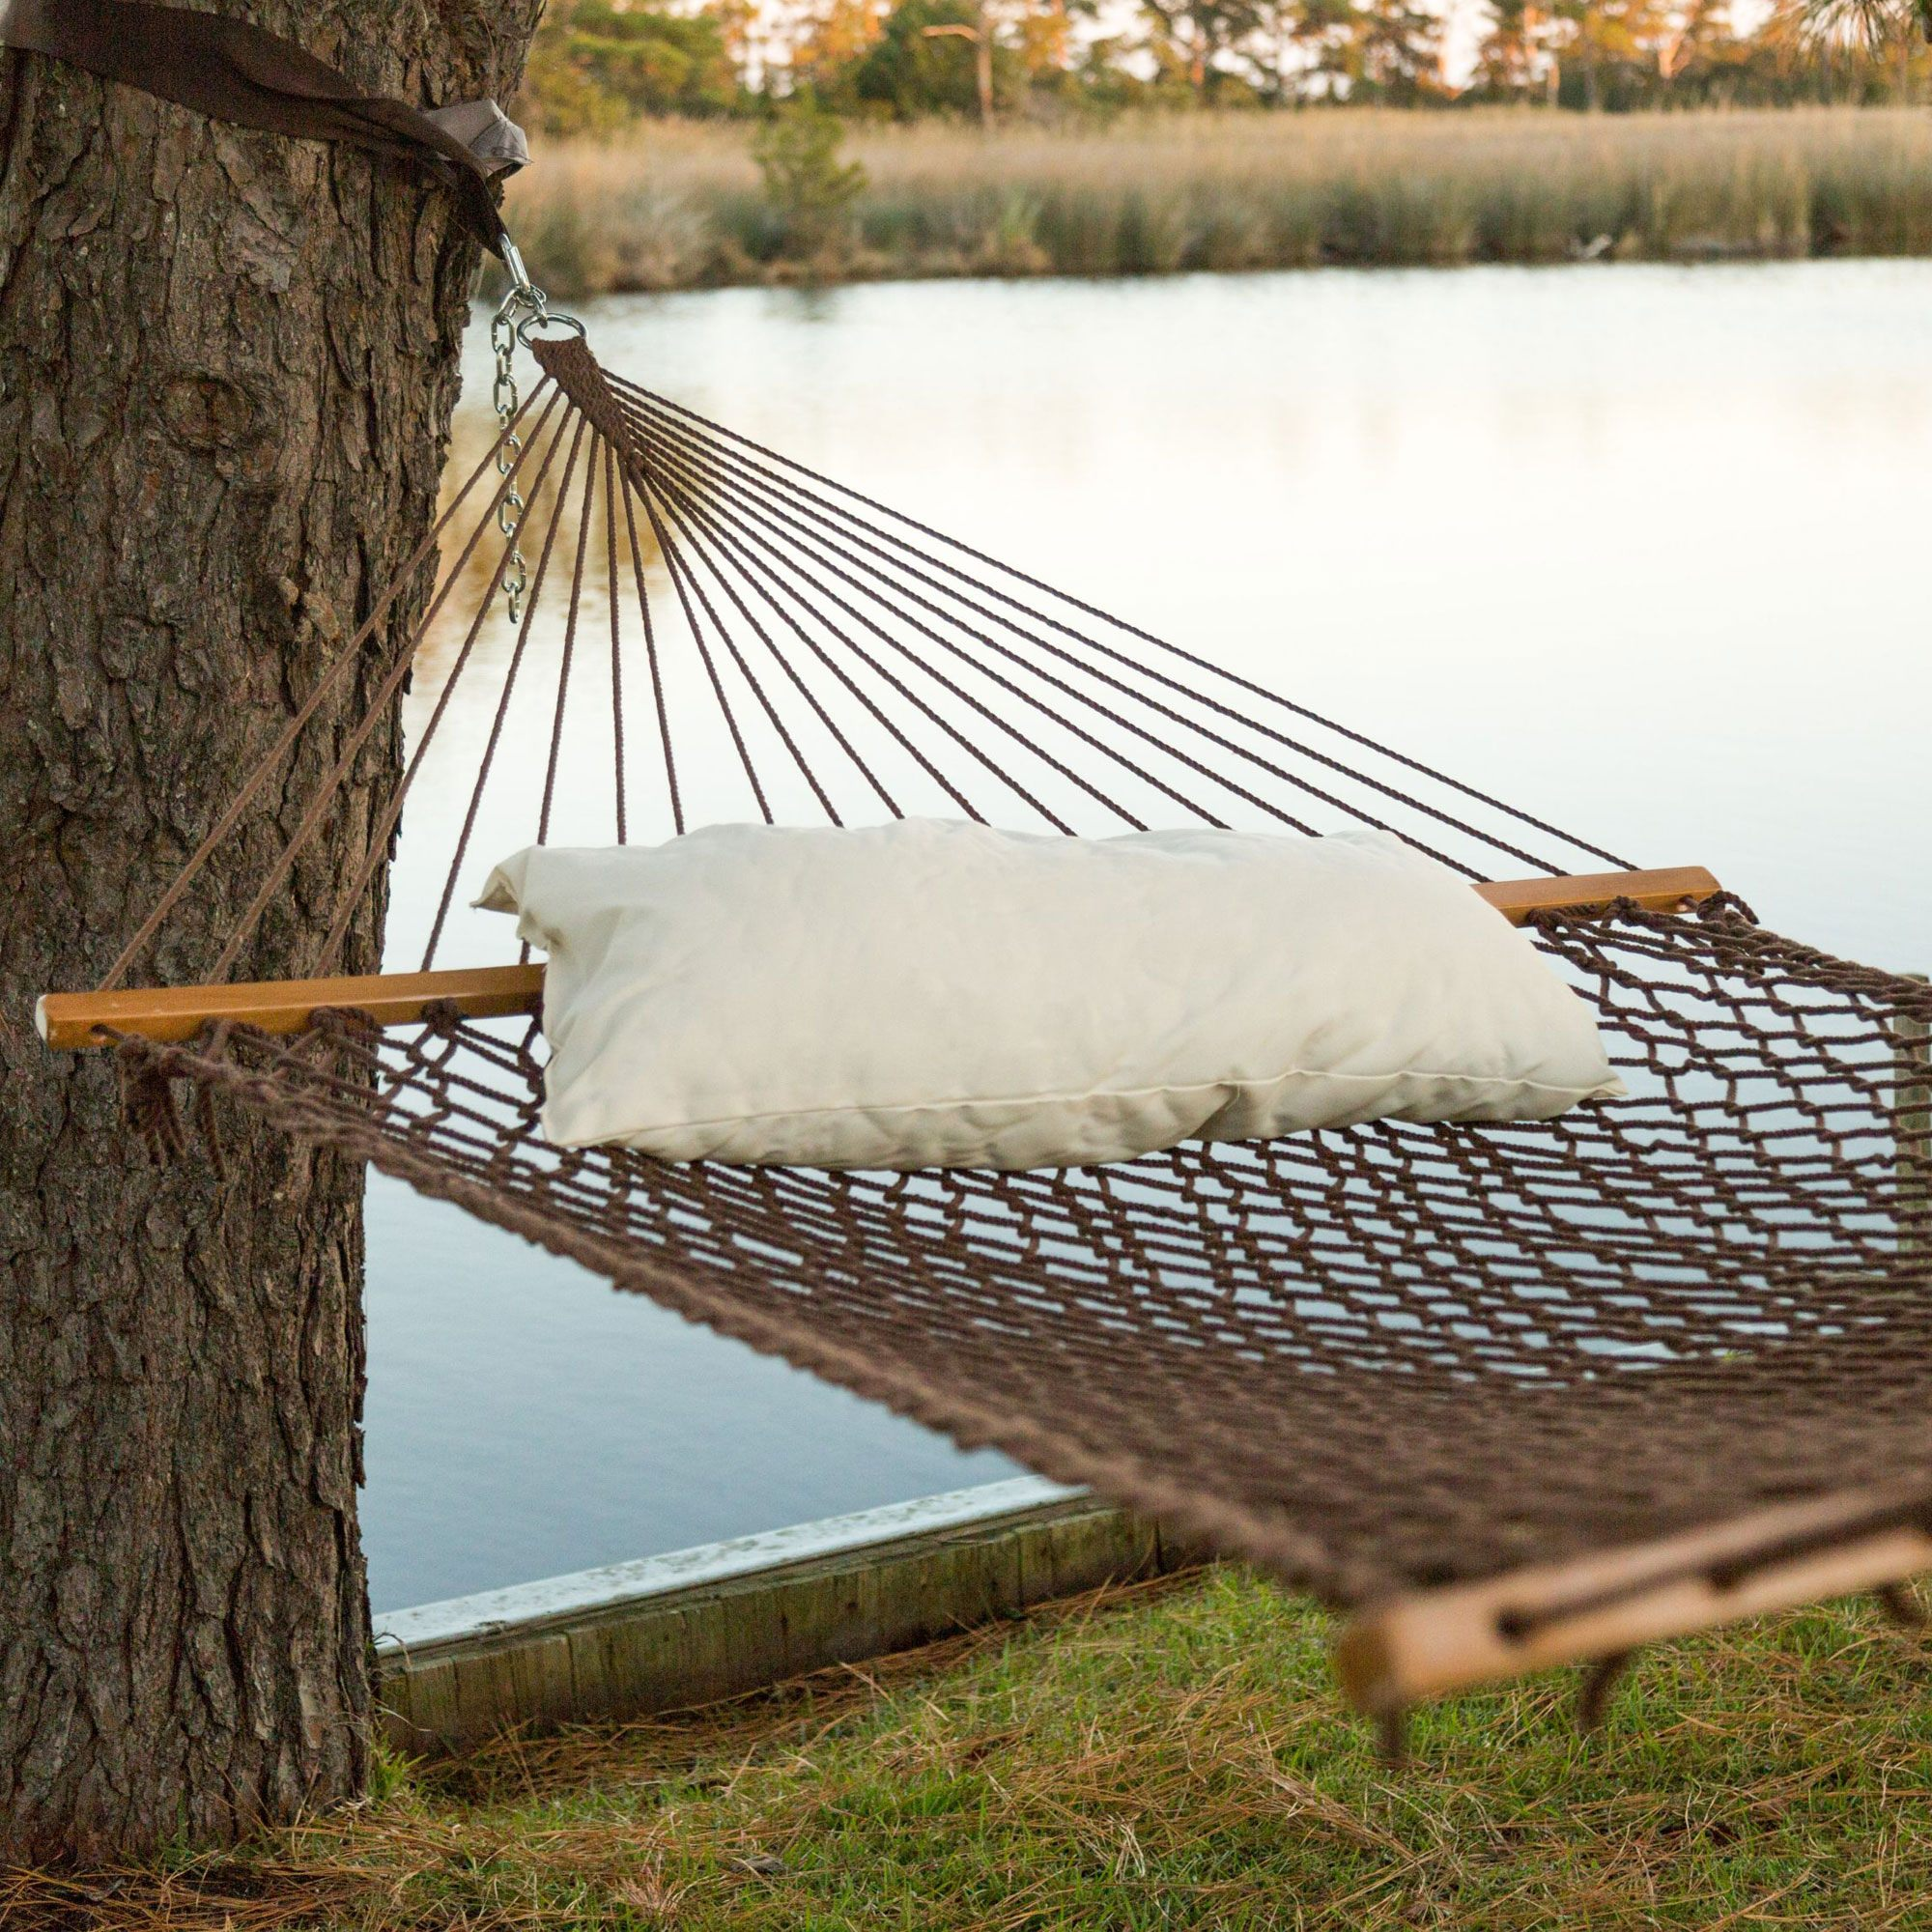 garden chairs home cotton from white leisure swing in macrame new bed item hammock rope hanging on outdoor cords